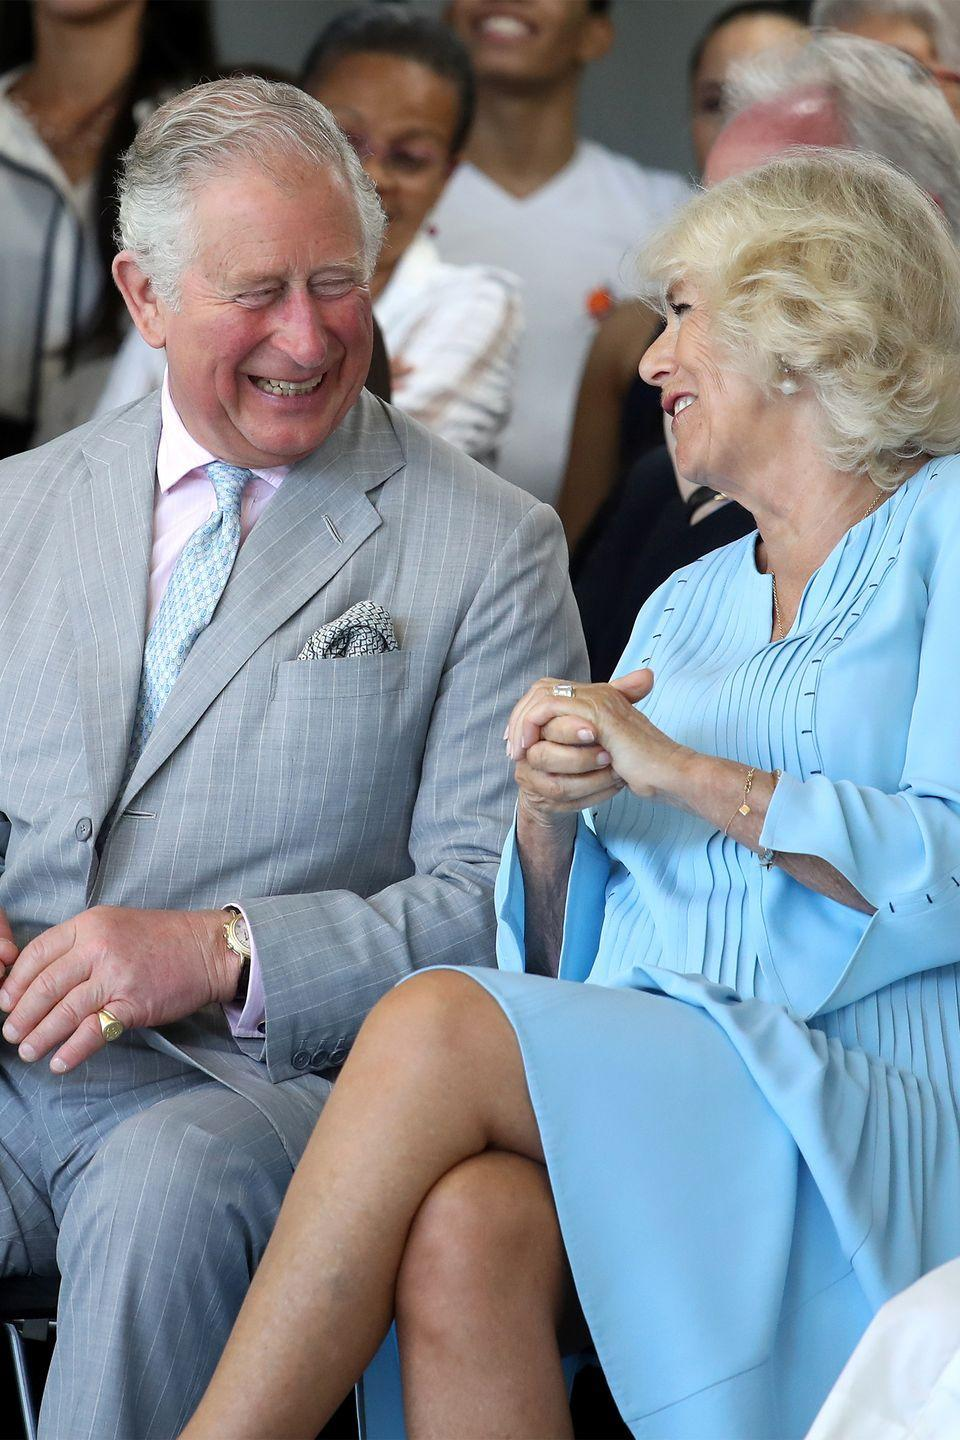 <p>Prince Charles laughs with Camilla, Duchess of Cornwall.</p>